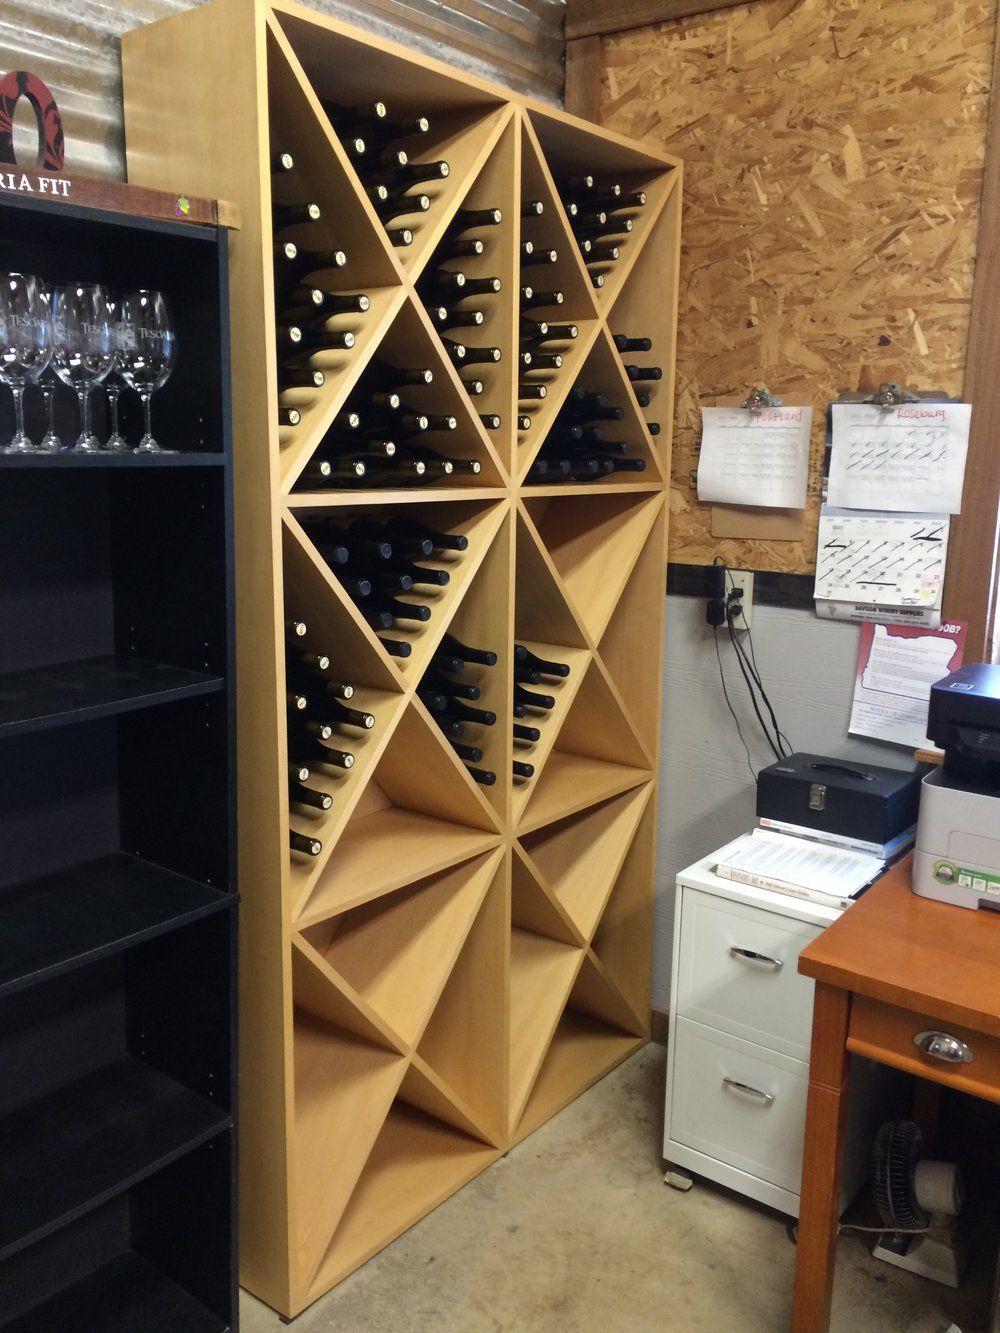 Douglas fir diamond wine rack at Roseburg winery.